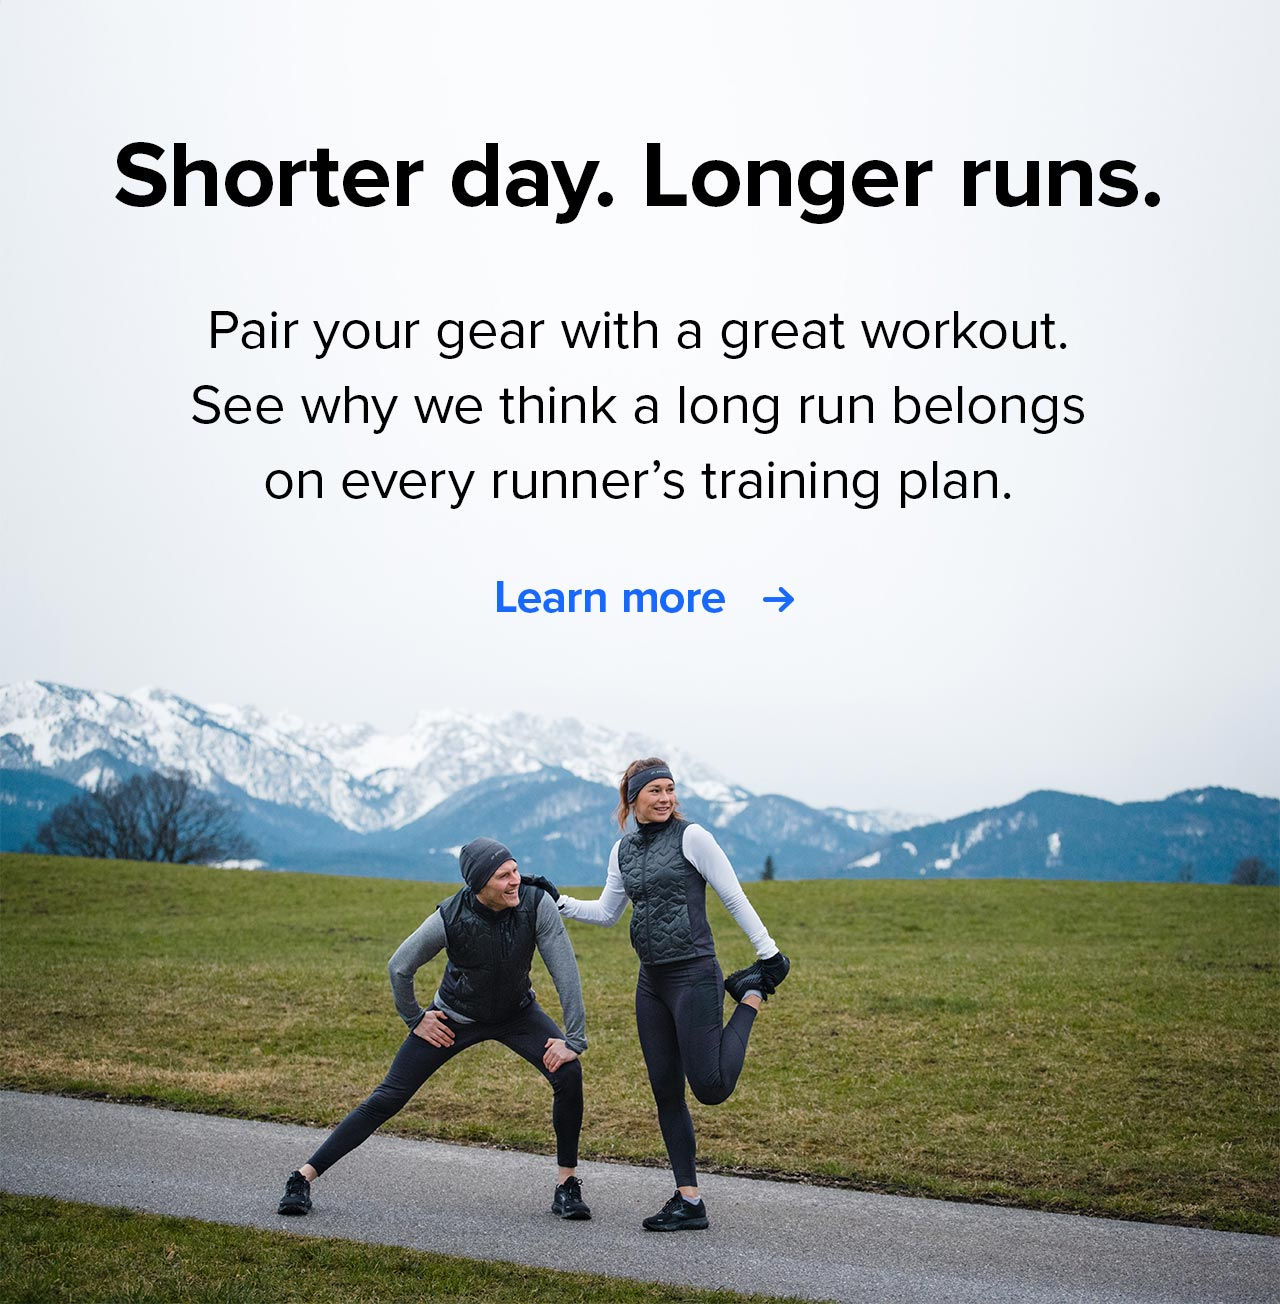 Shorter day. Longer runs. Pair your gear with a great workout. See why we think a long run belongs on every runner''s training plan. Learn more